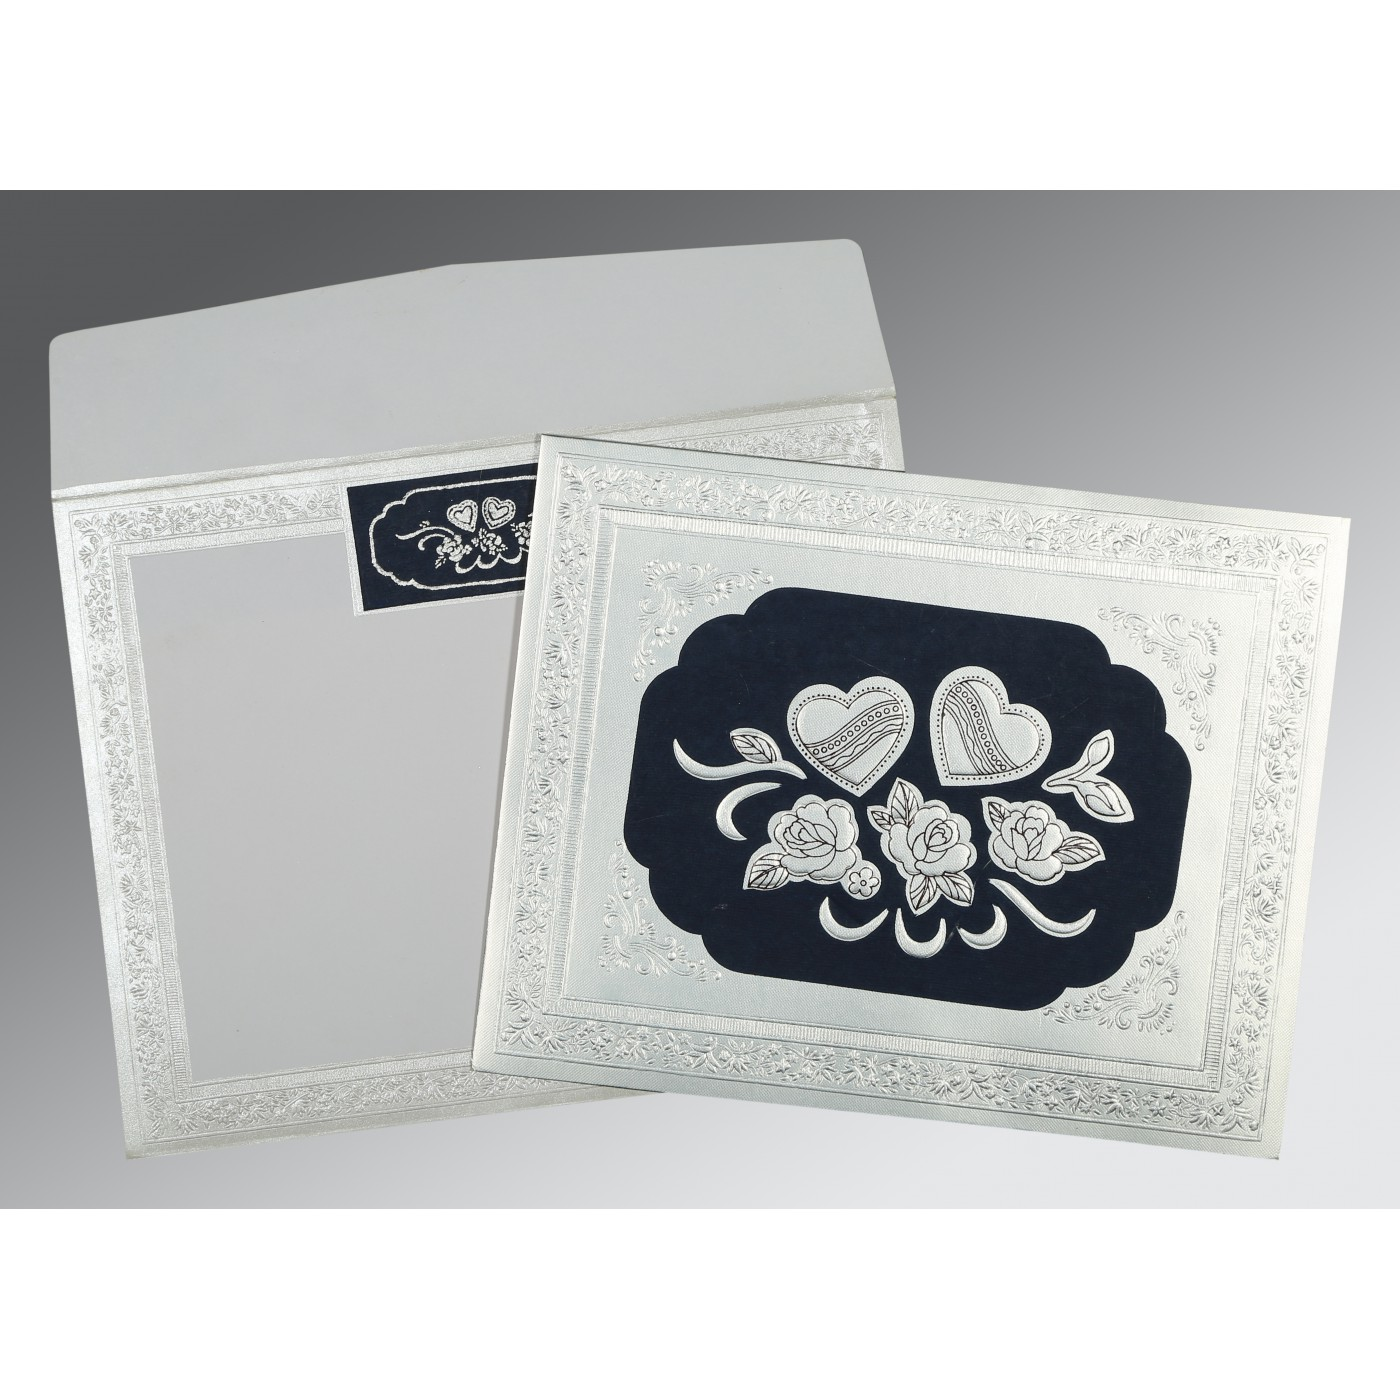 BLUE SILVER SHIMMERY FLORAL THEMED - EMBOSSED WEDDING INVITATION : C-1325 - 123WeddingCards